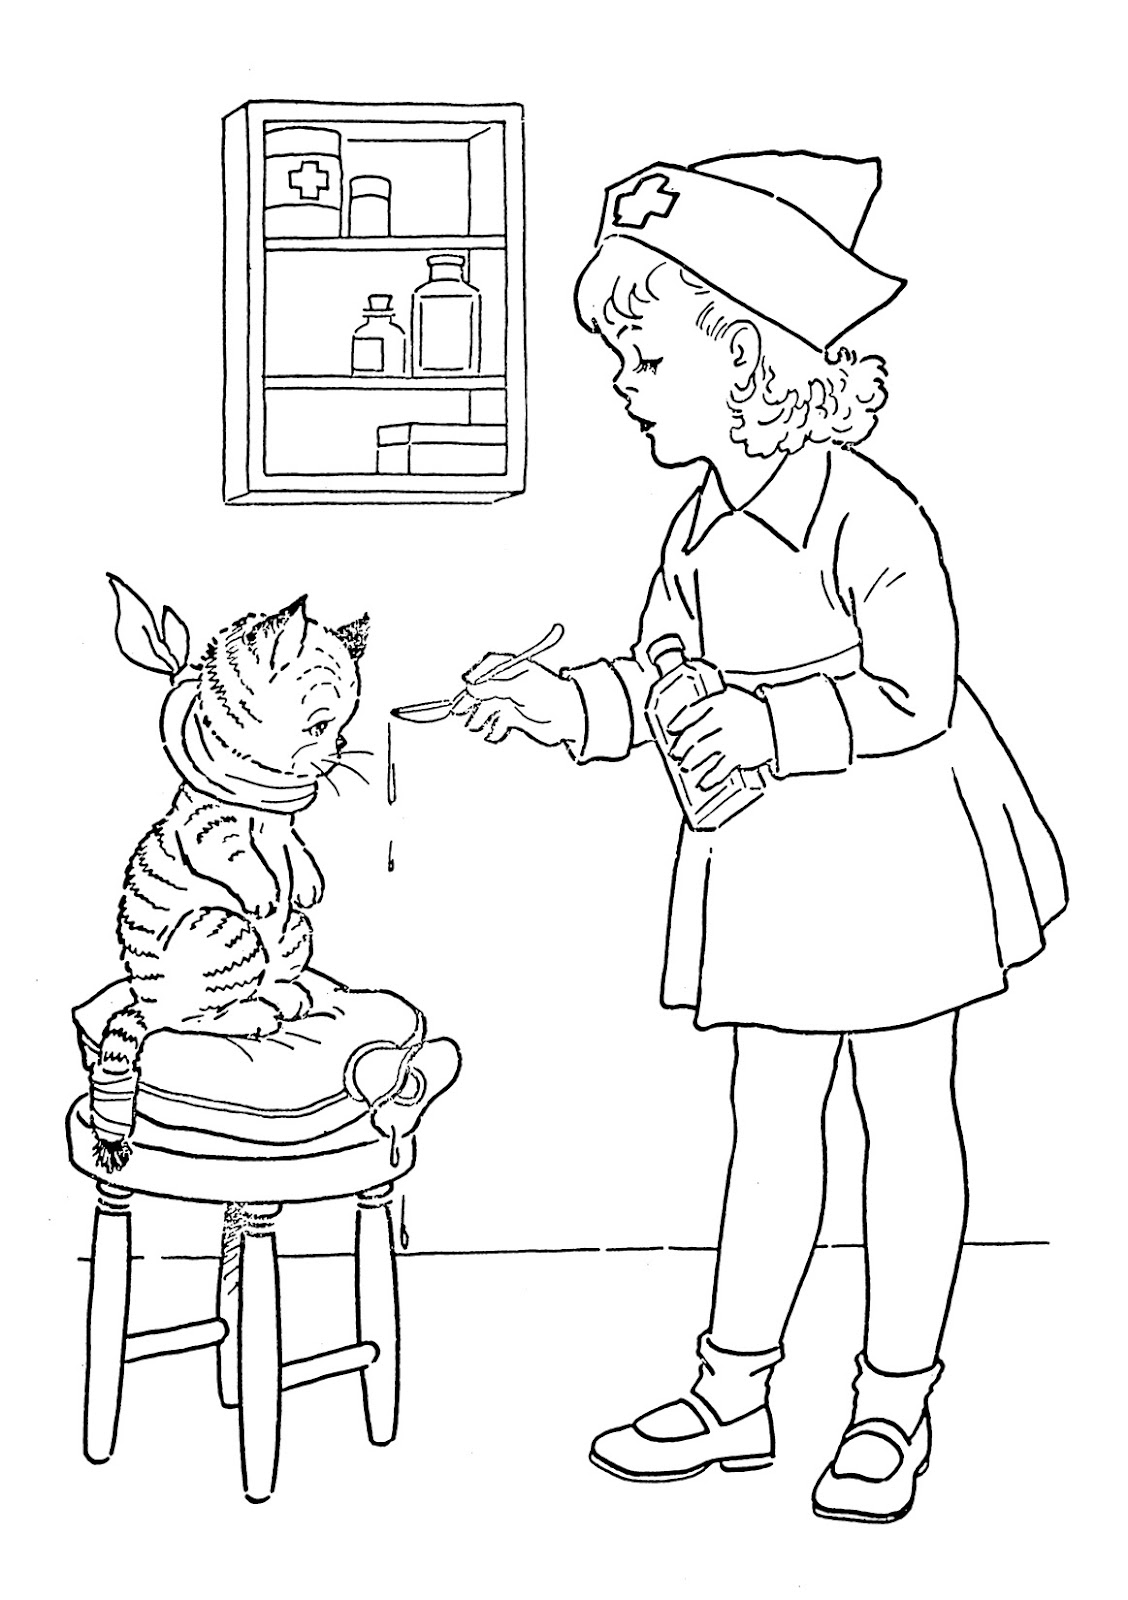 child nurse coloring pages - photo#8